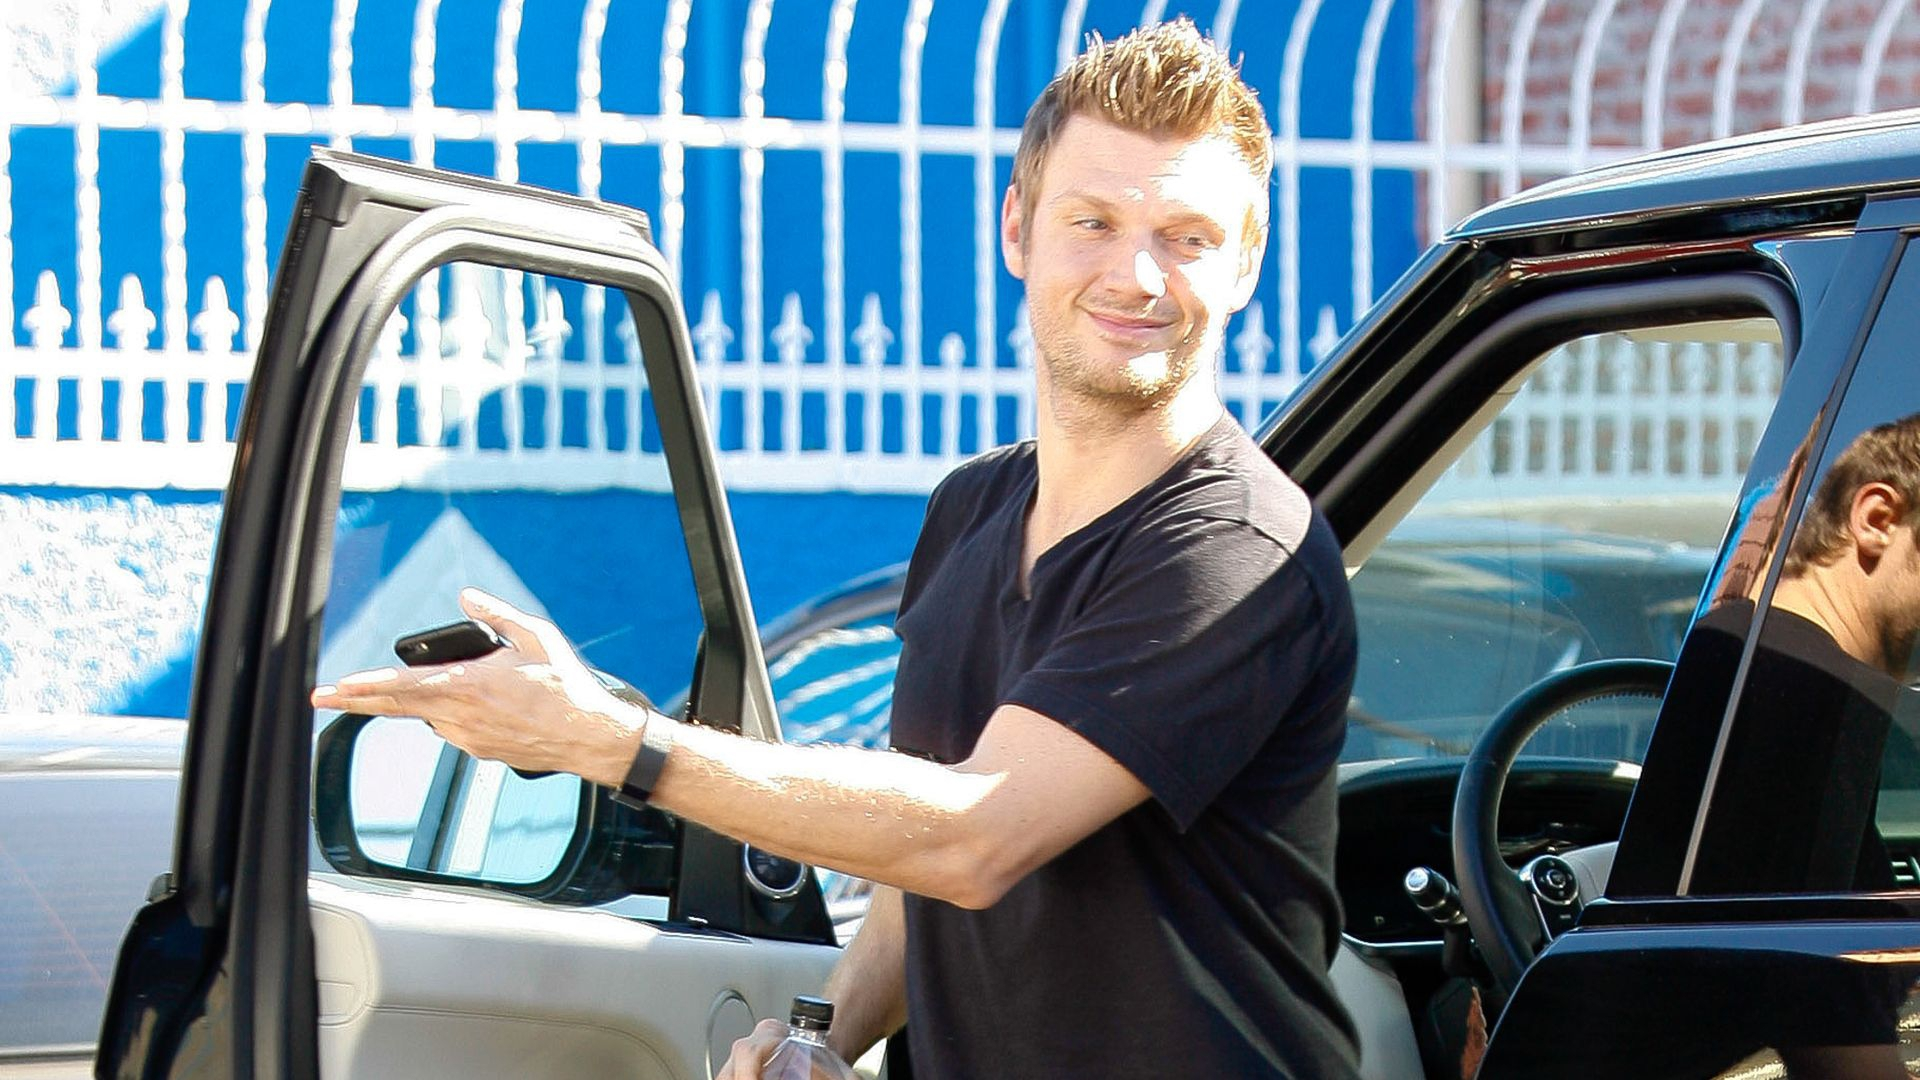 Nick Carter Hd Wallpaper